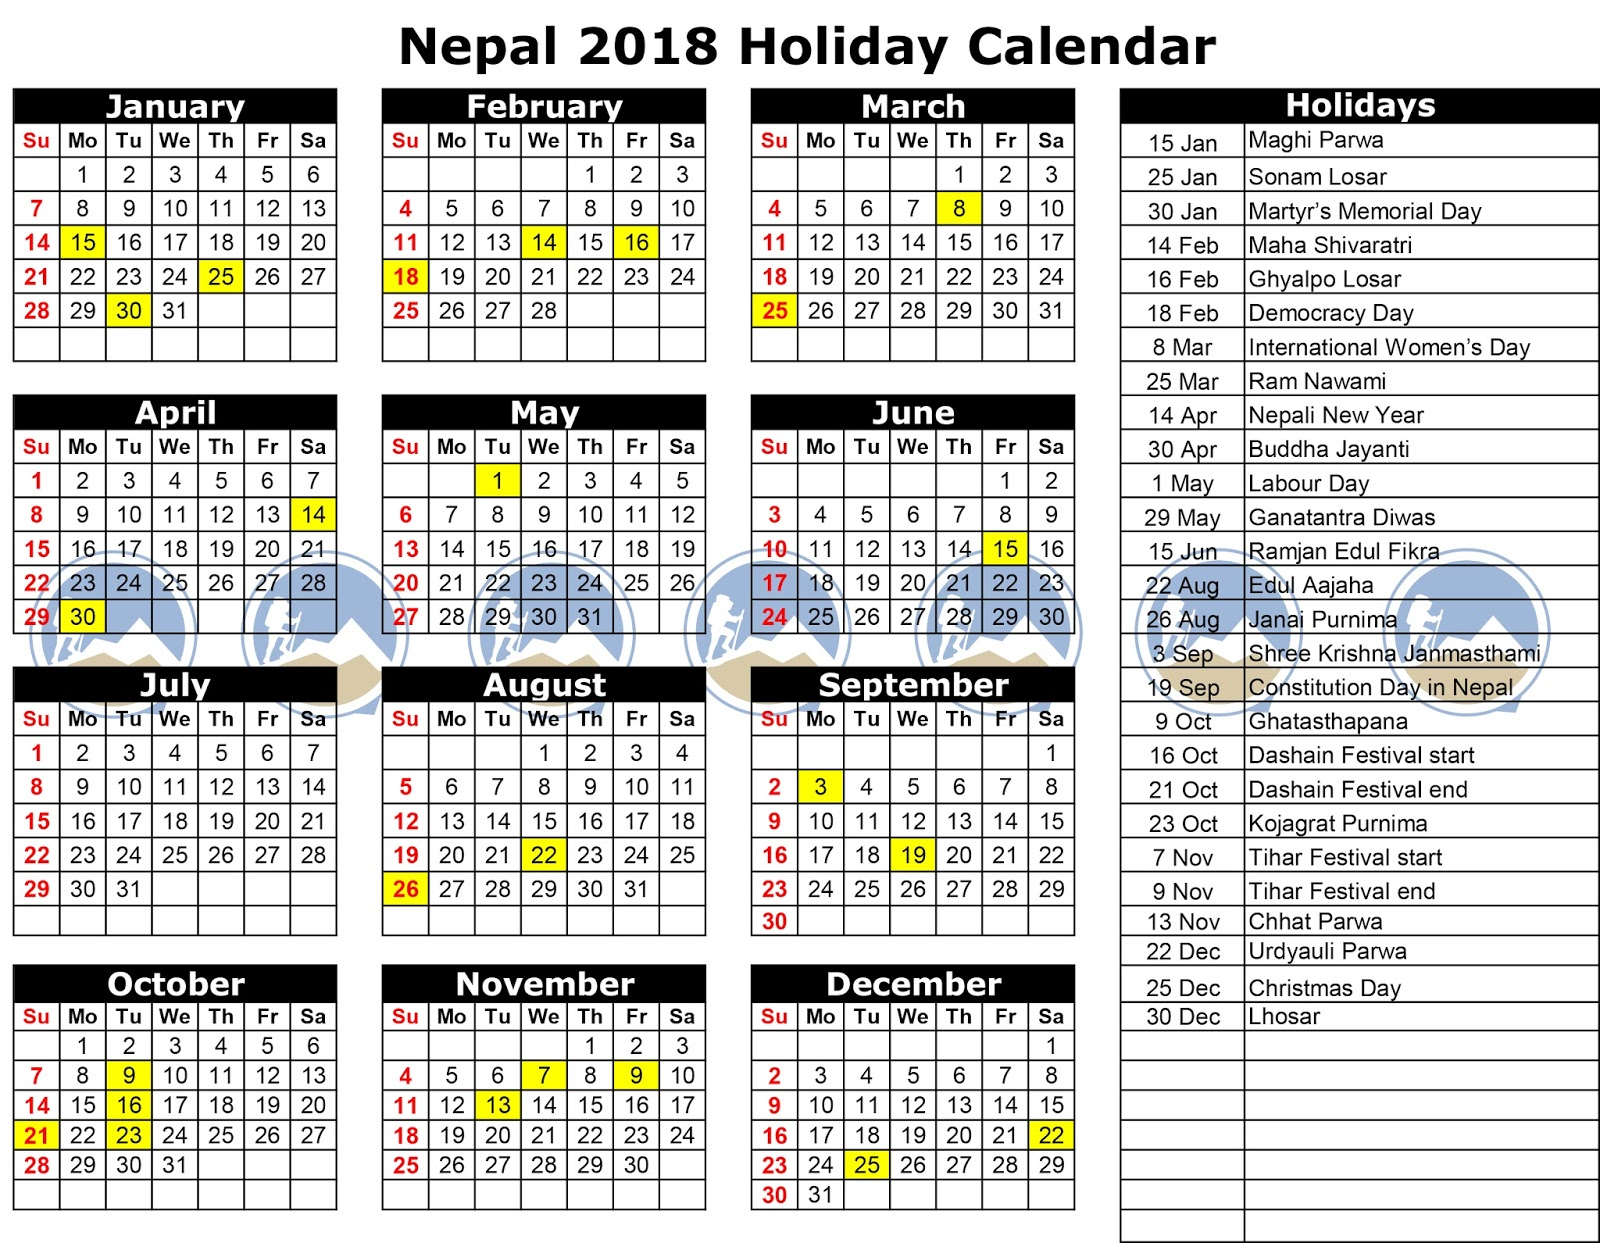 List of Public Holidays in Nepal 2075/2018-2019